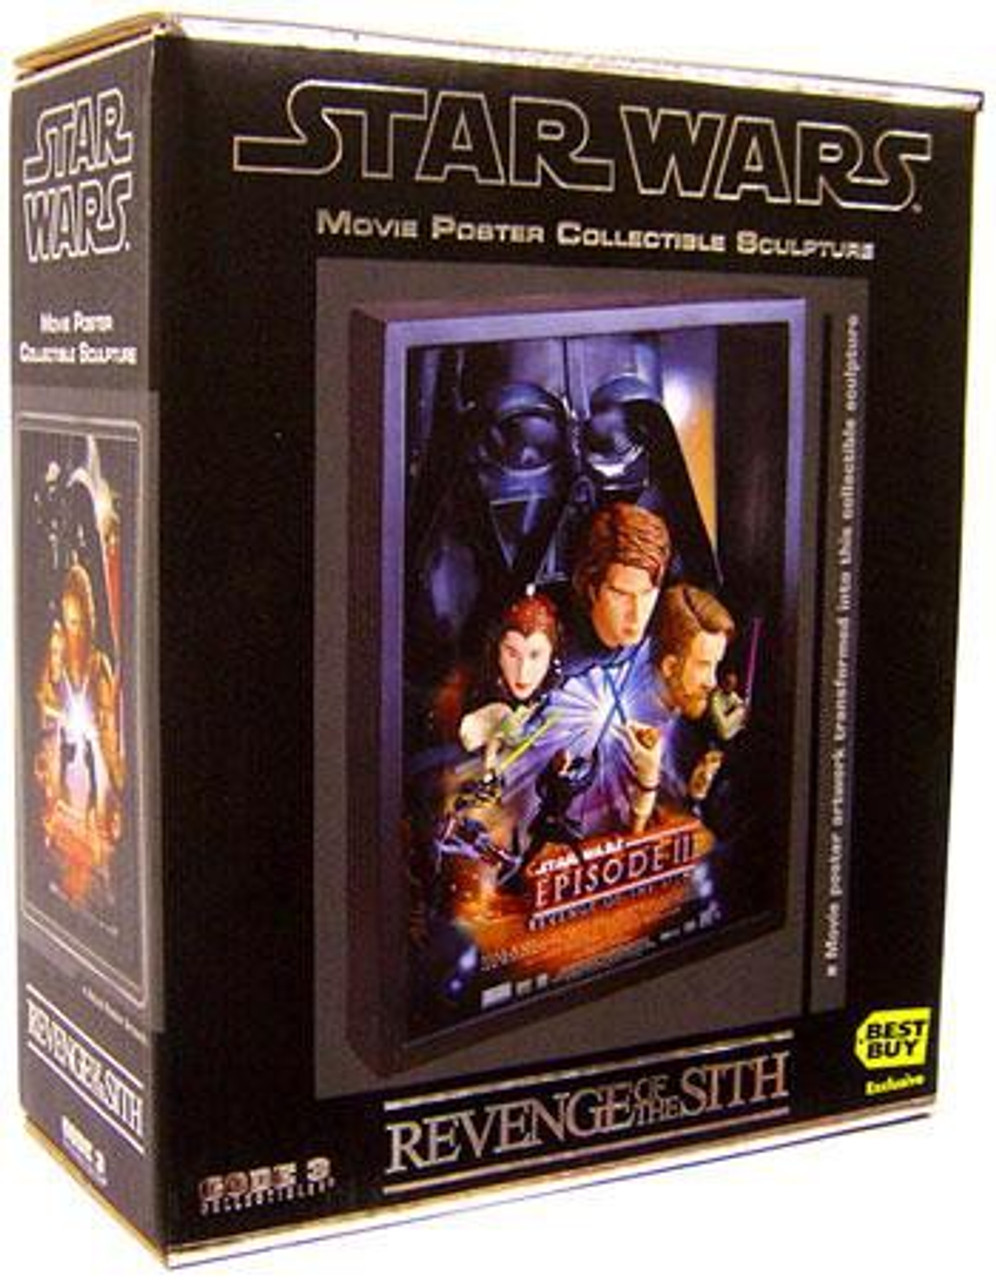 Star Wars Revenge Of The Sith Movie Poster Collectible Sculpture Code 3 Toywiz